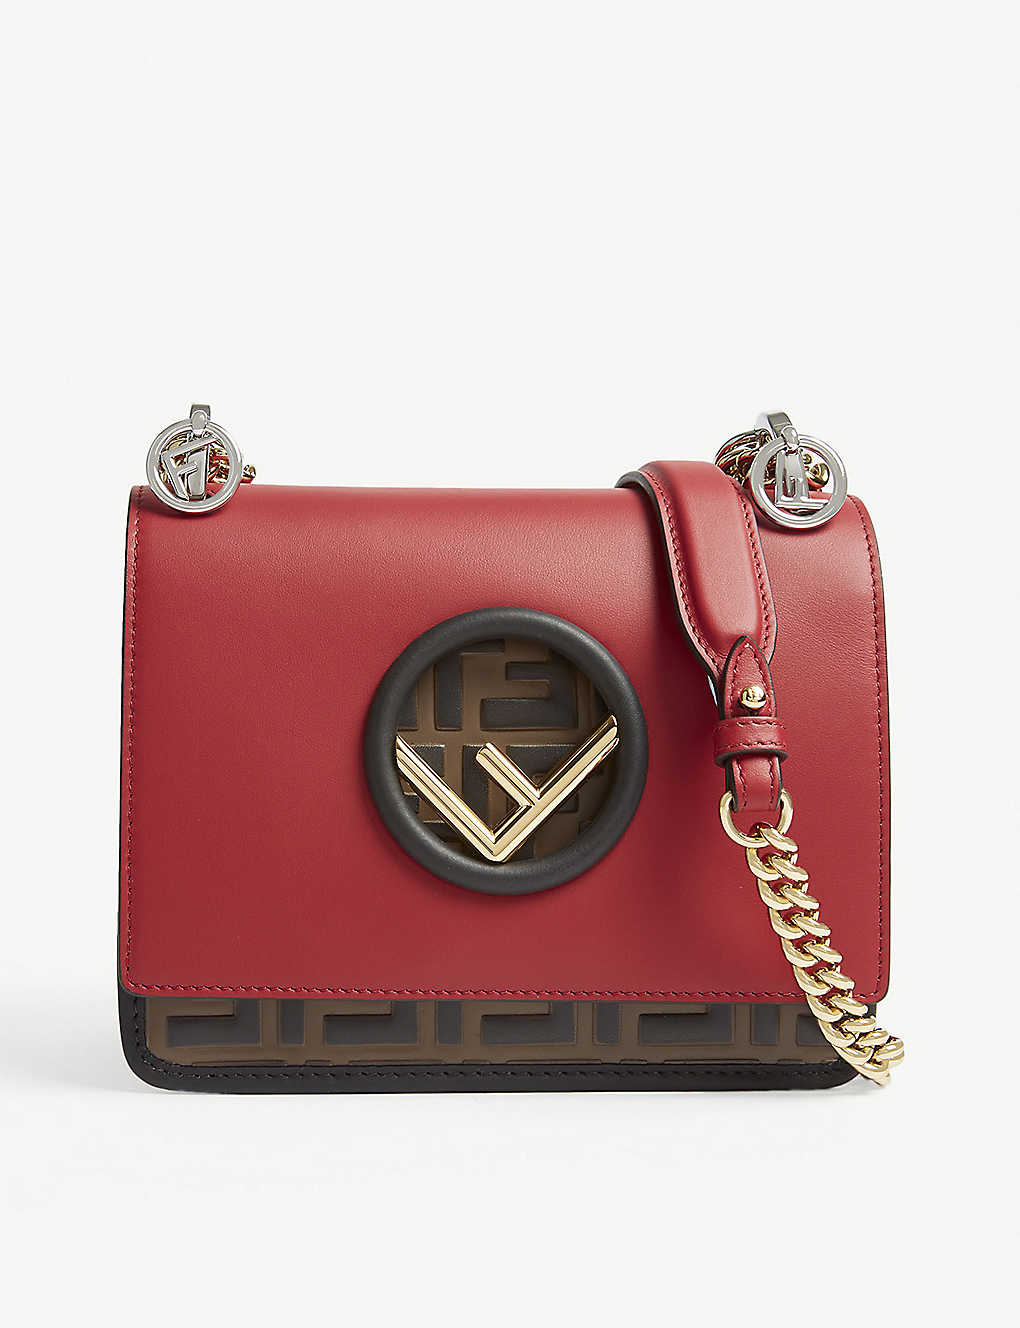 FENDI - Fendi Kan I logo small leather cross-body bag   Selfridges.com 1253fb231b